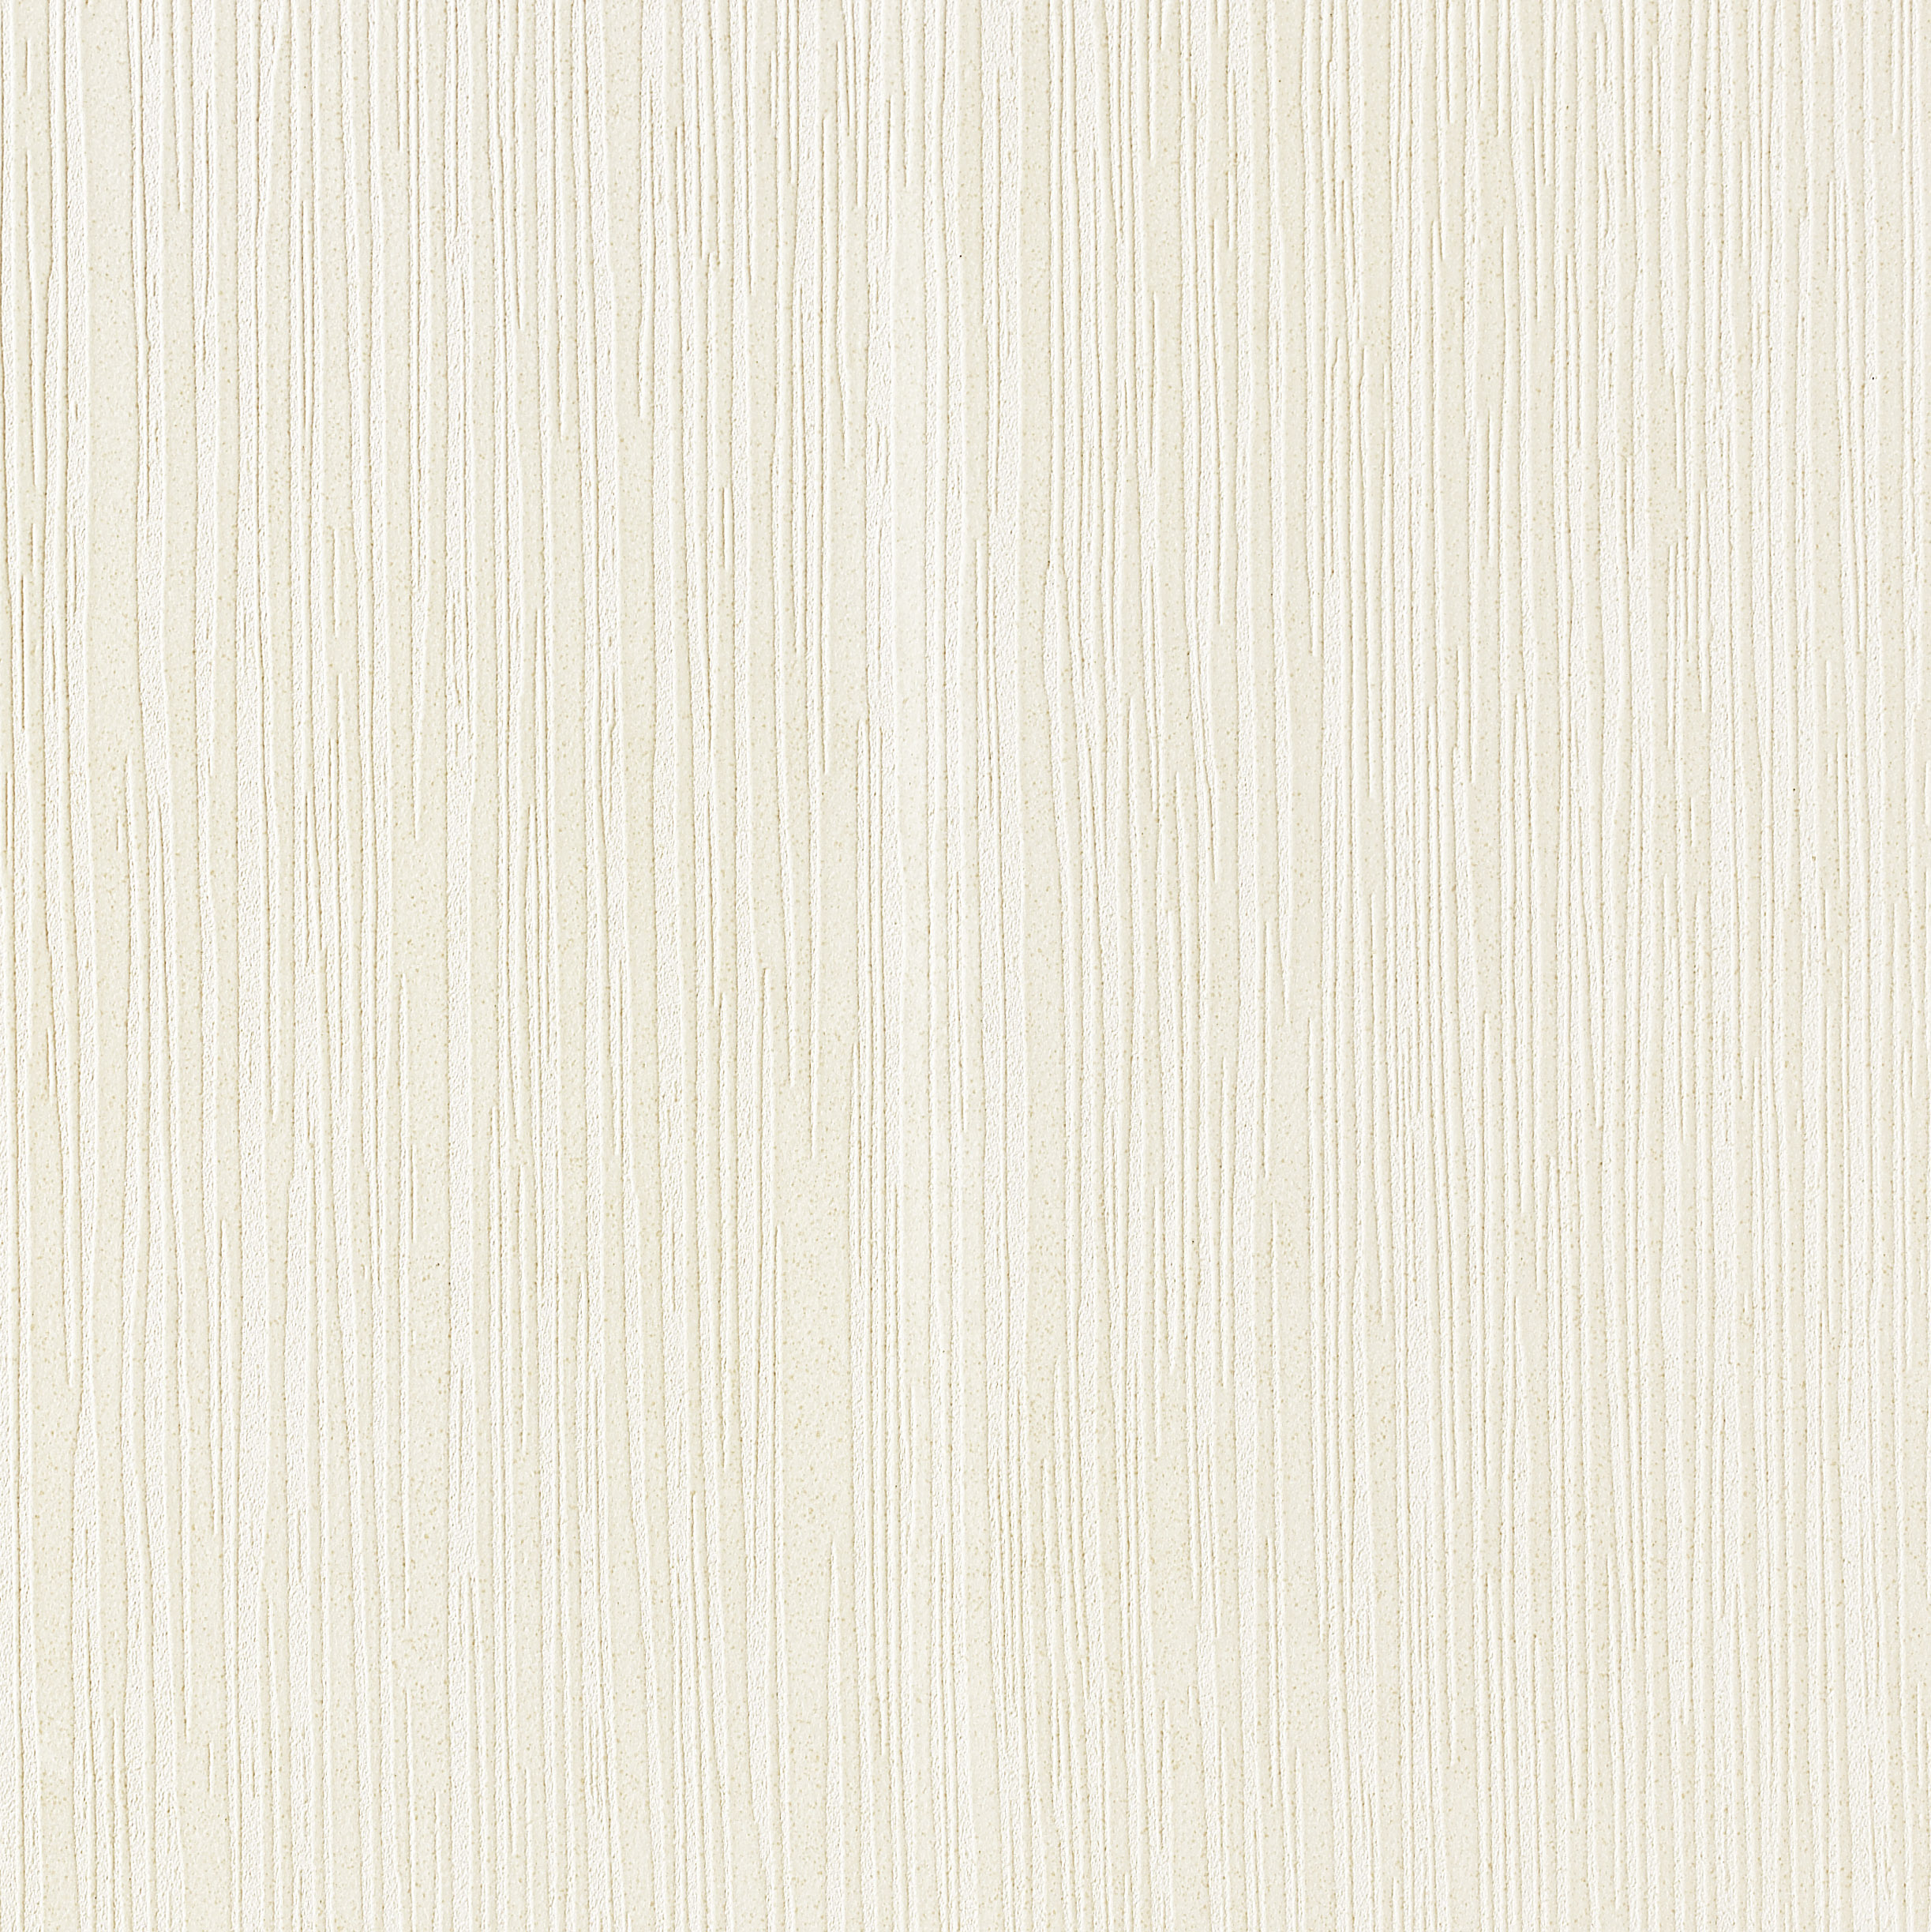 Porcelain Tile | Bentley Series - HSLBW60291 | by Hospitality Finishes